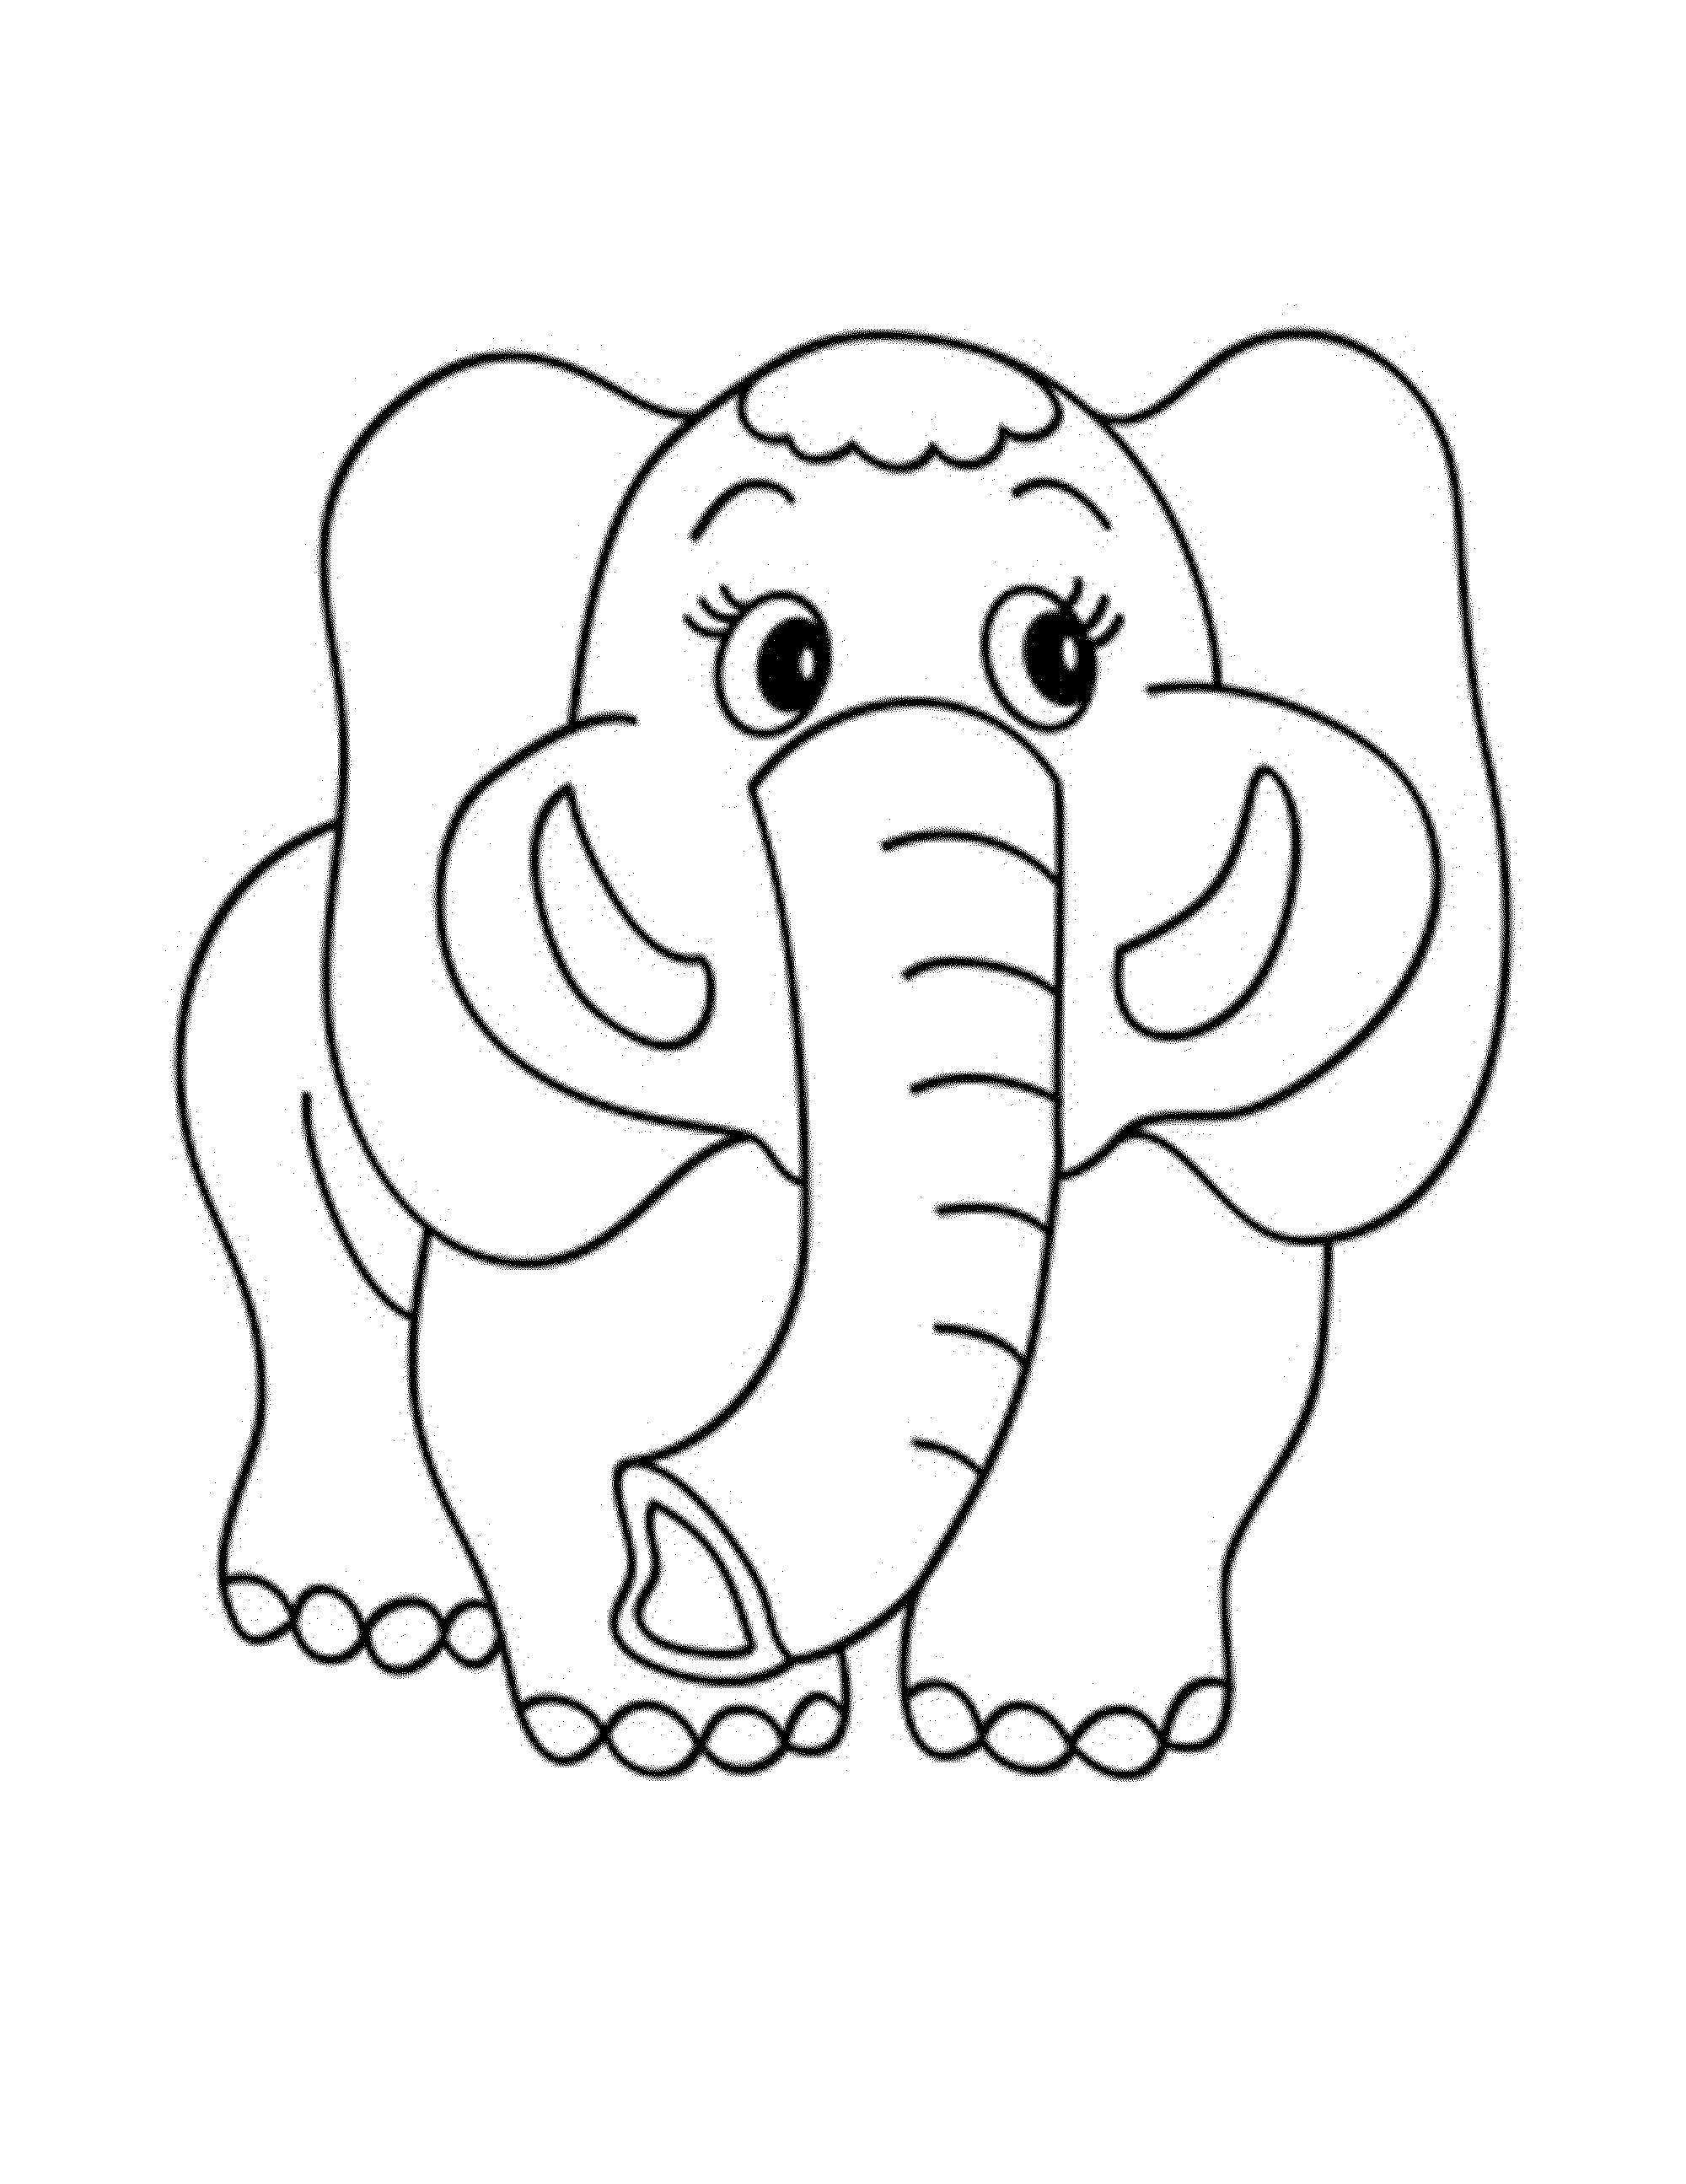 colouring picture of elephant print download teaching kids through elephant coloring colouring of elephant picture